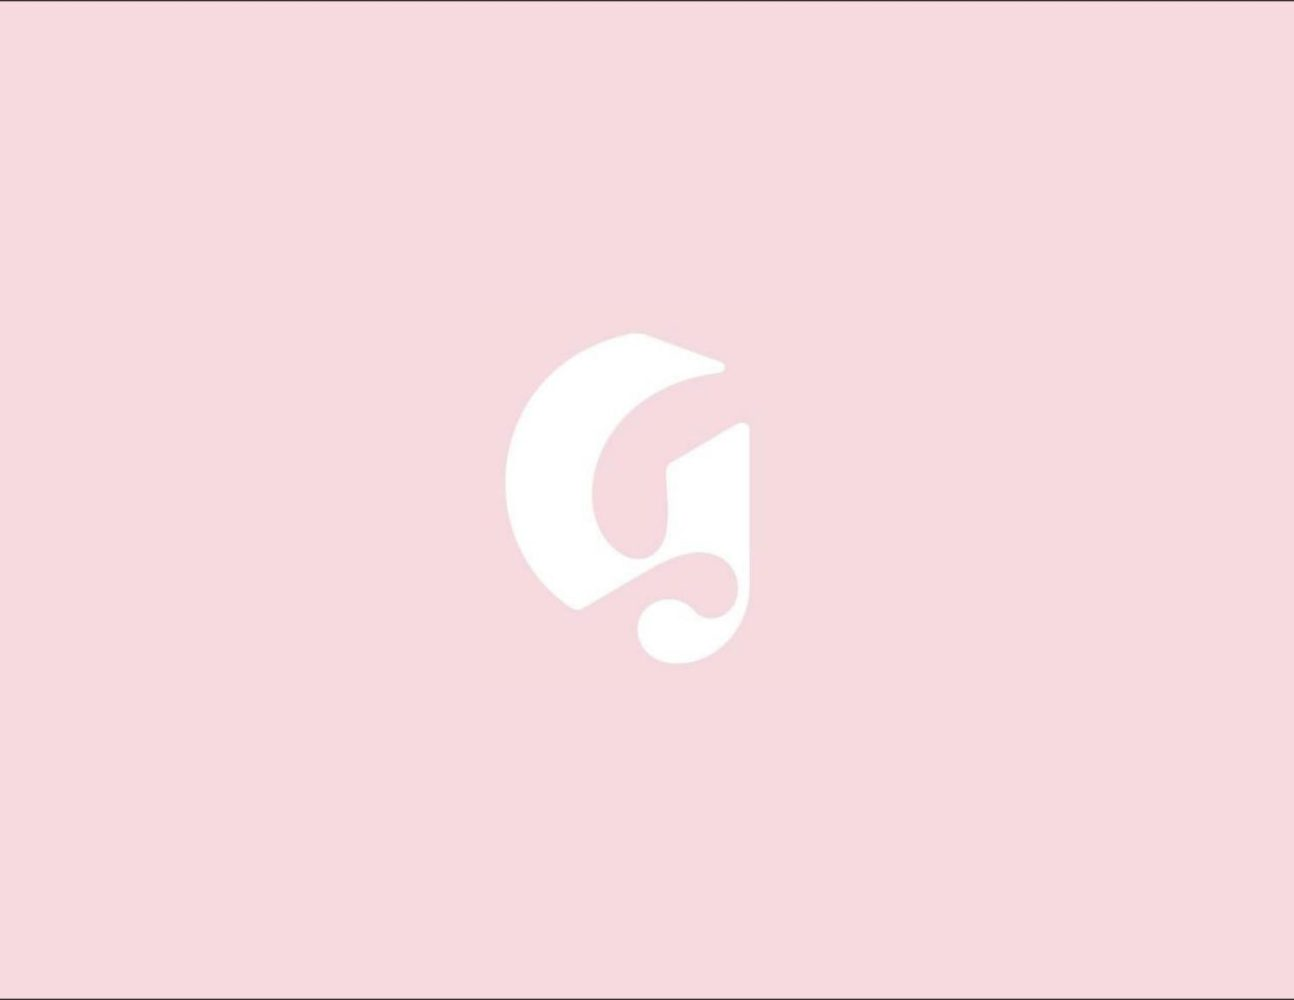 Digital Marketing We Love: Glossier's Social Media